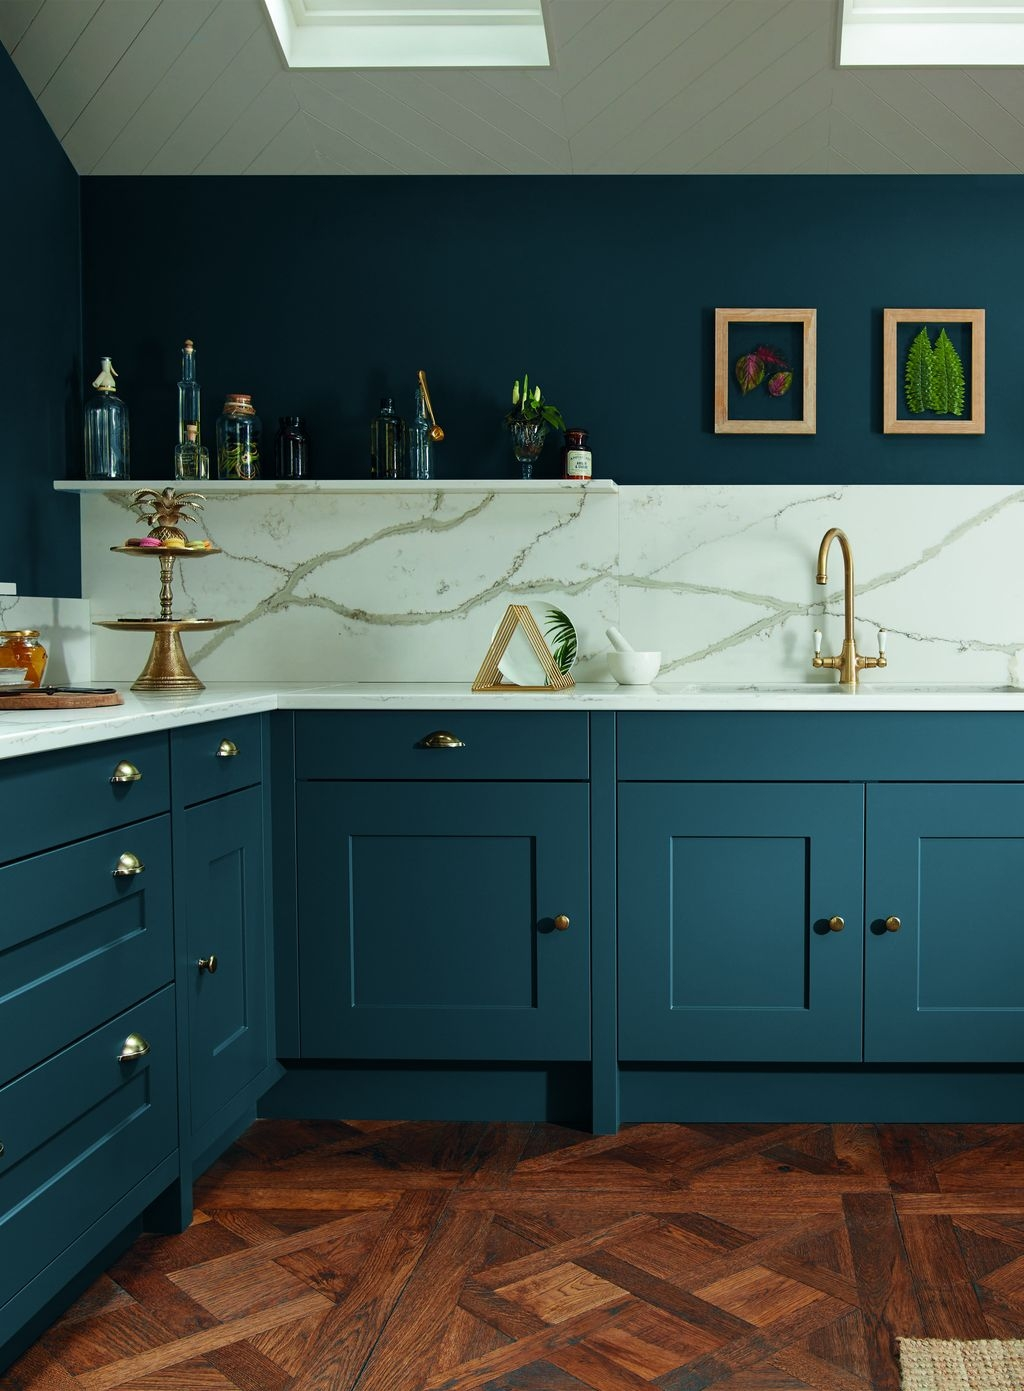 Unordinary Kitchen Colors Design Ideas That Looks Cool30